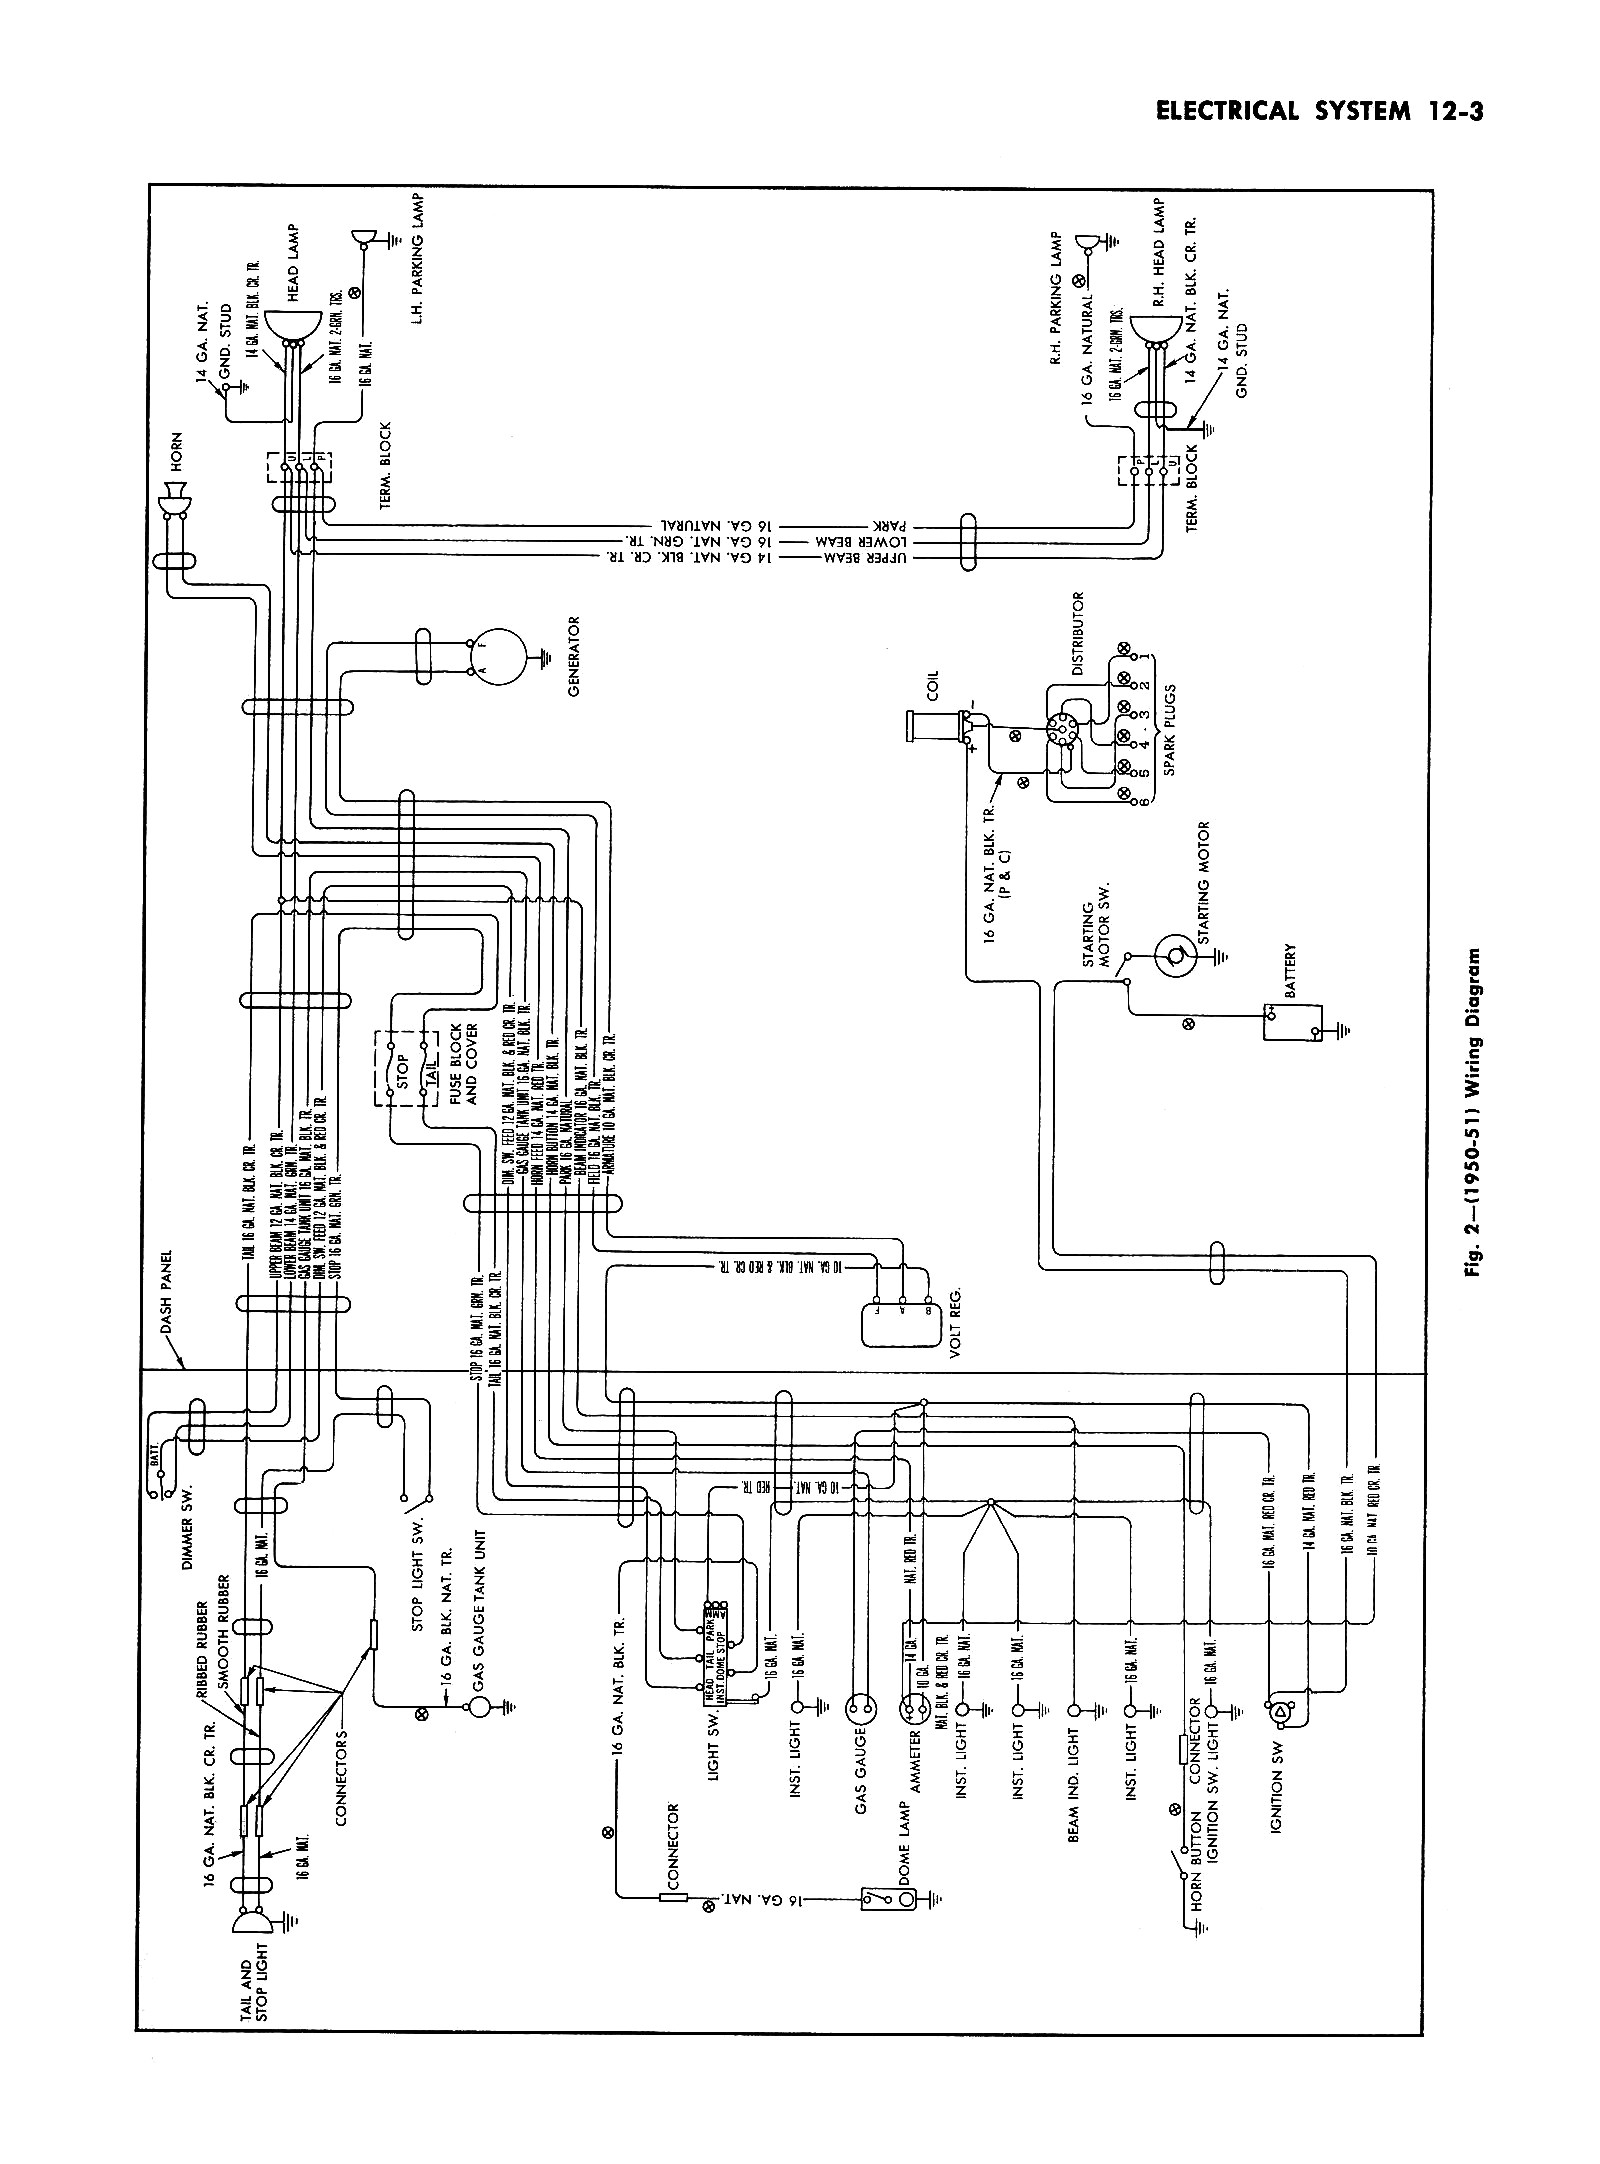 6 volt turn signal wiring diagram technical diagrams 1953 chevy truck under dash wiring